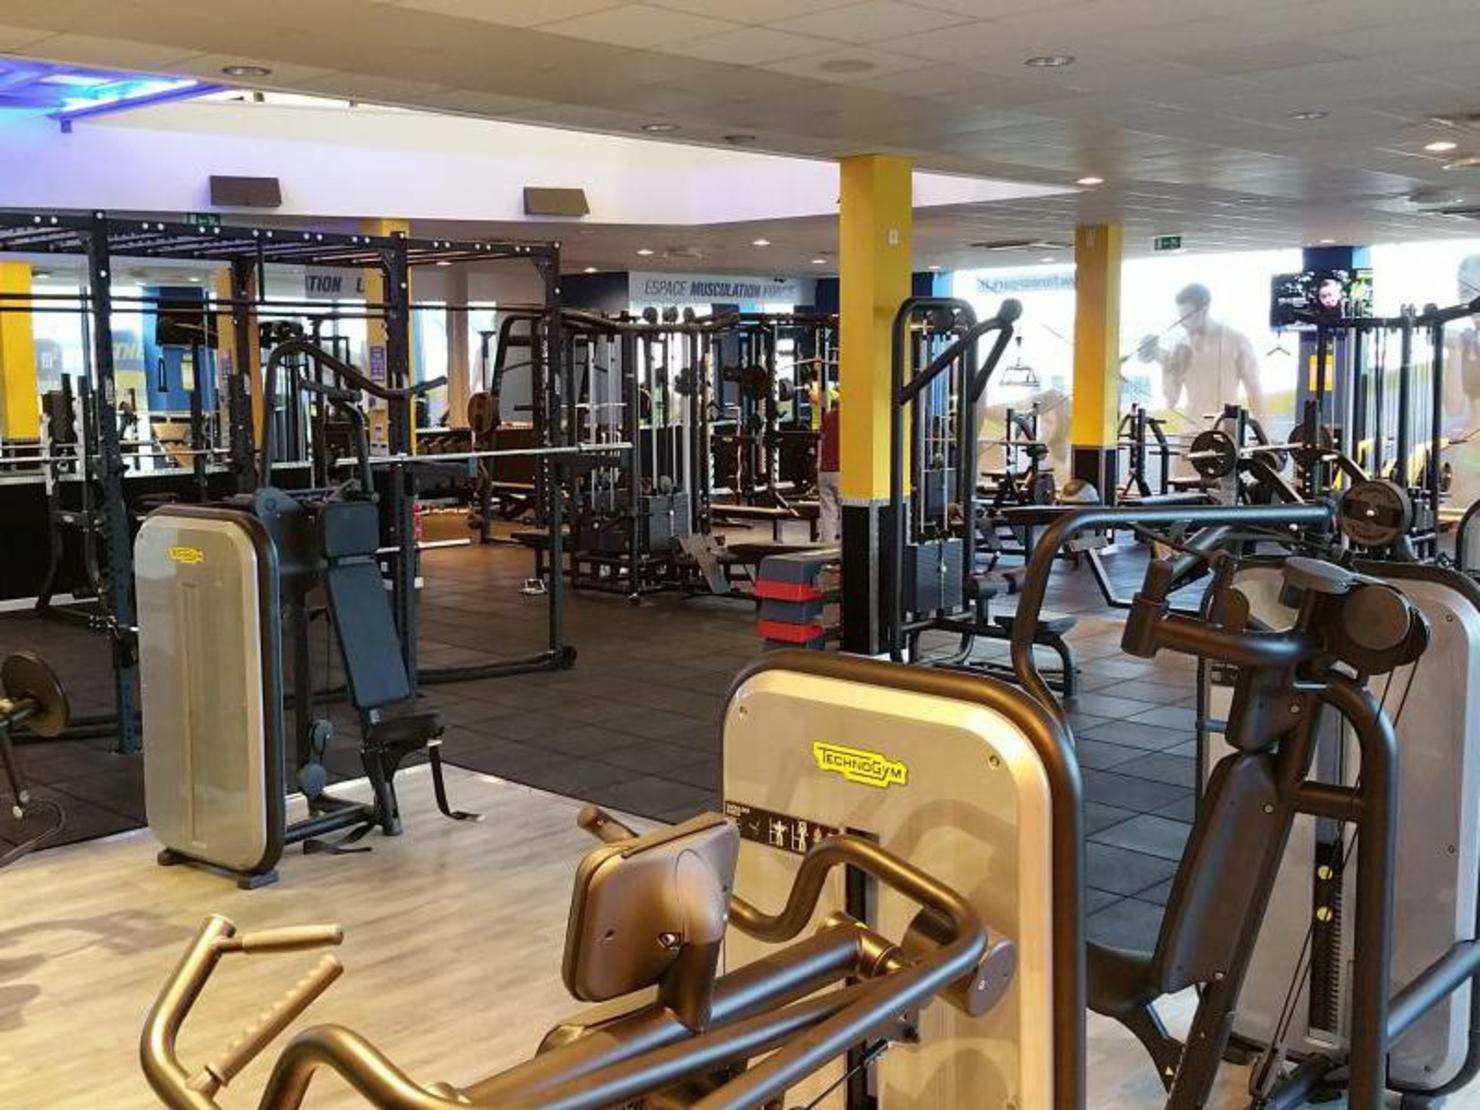 fitness park rennes montgermont tarifs avis horaires essai gratuit. Black Bedroom Furniture Sets. Home Design Ideas